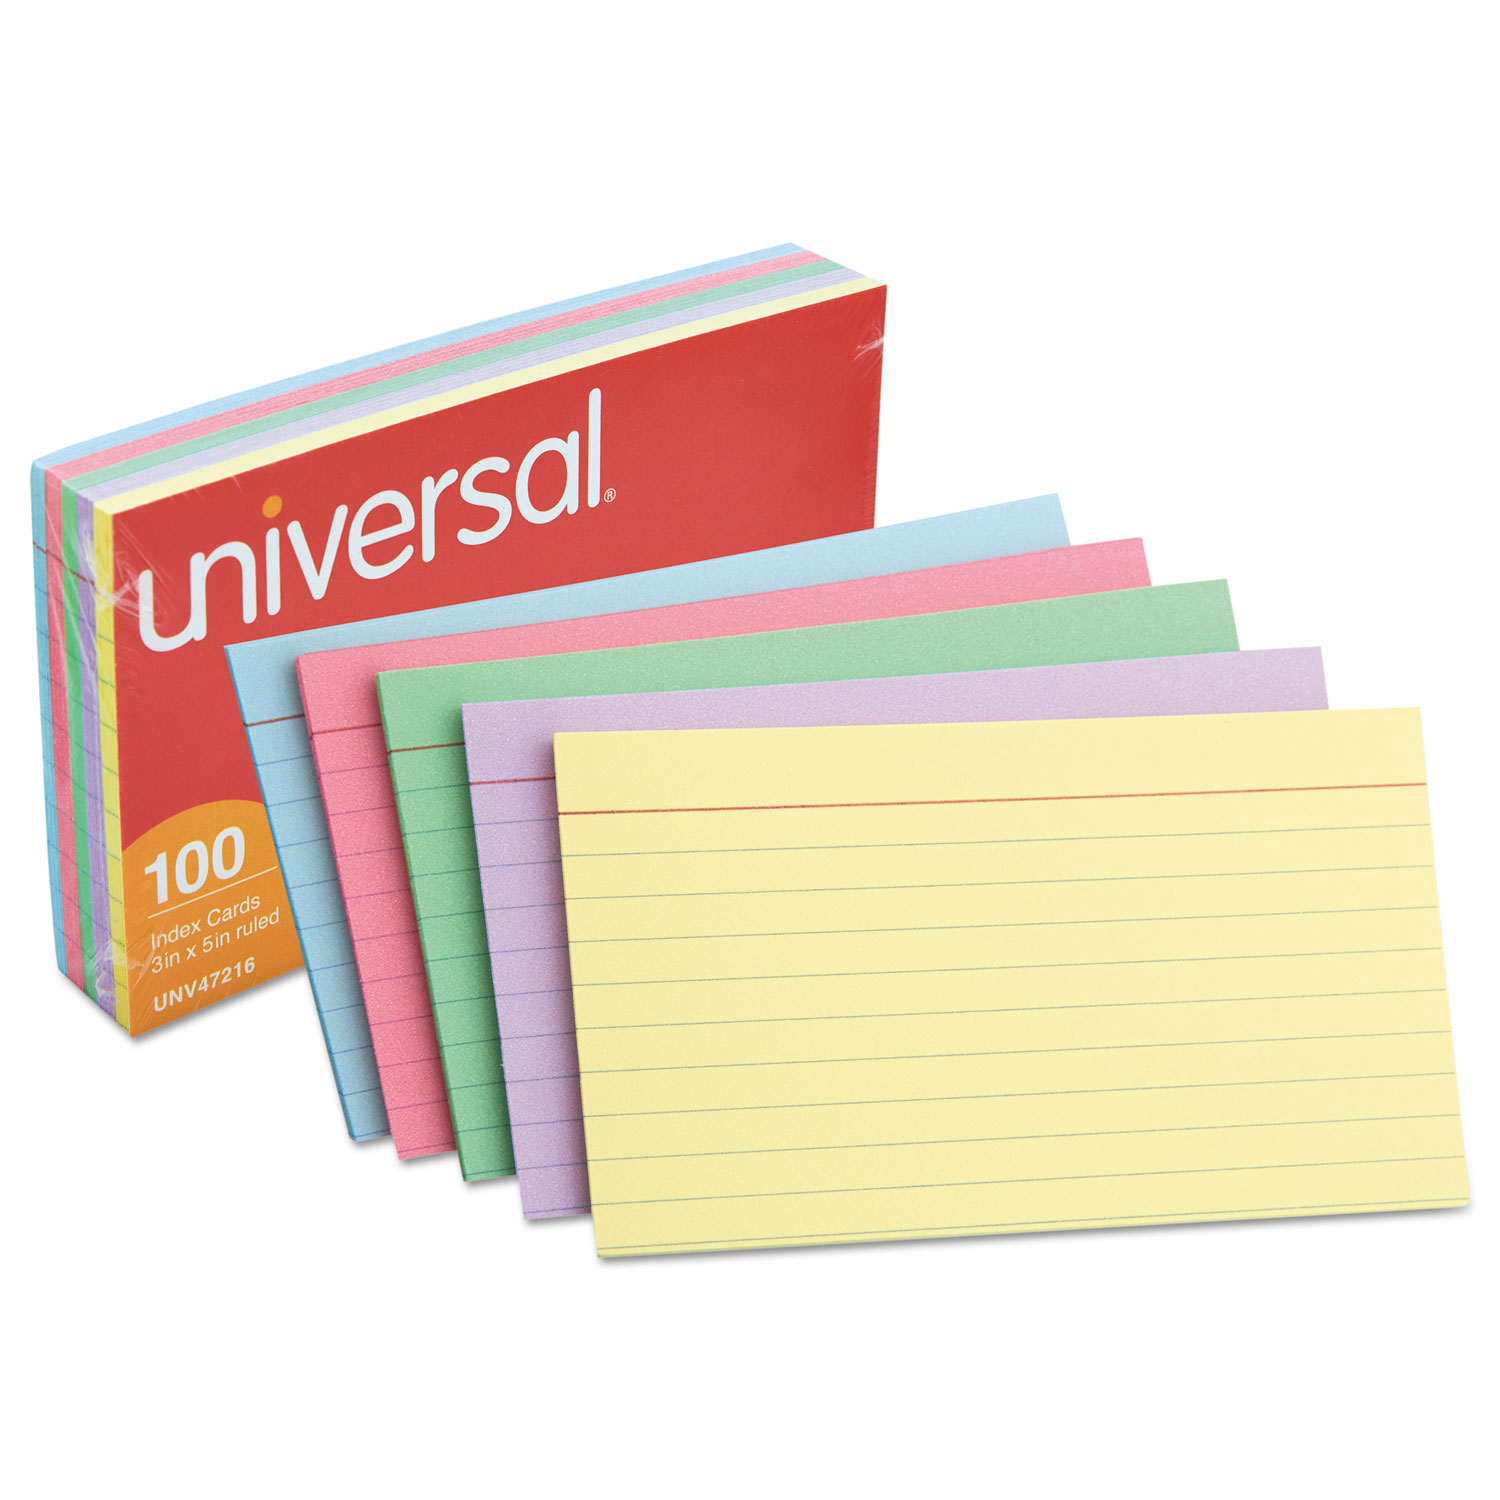 Create Structure in Your Fiction Using Index Cards